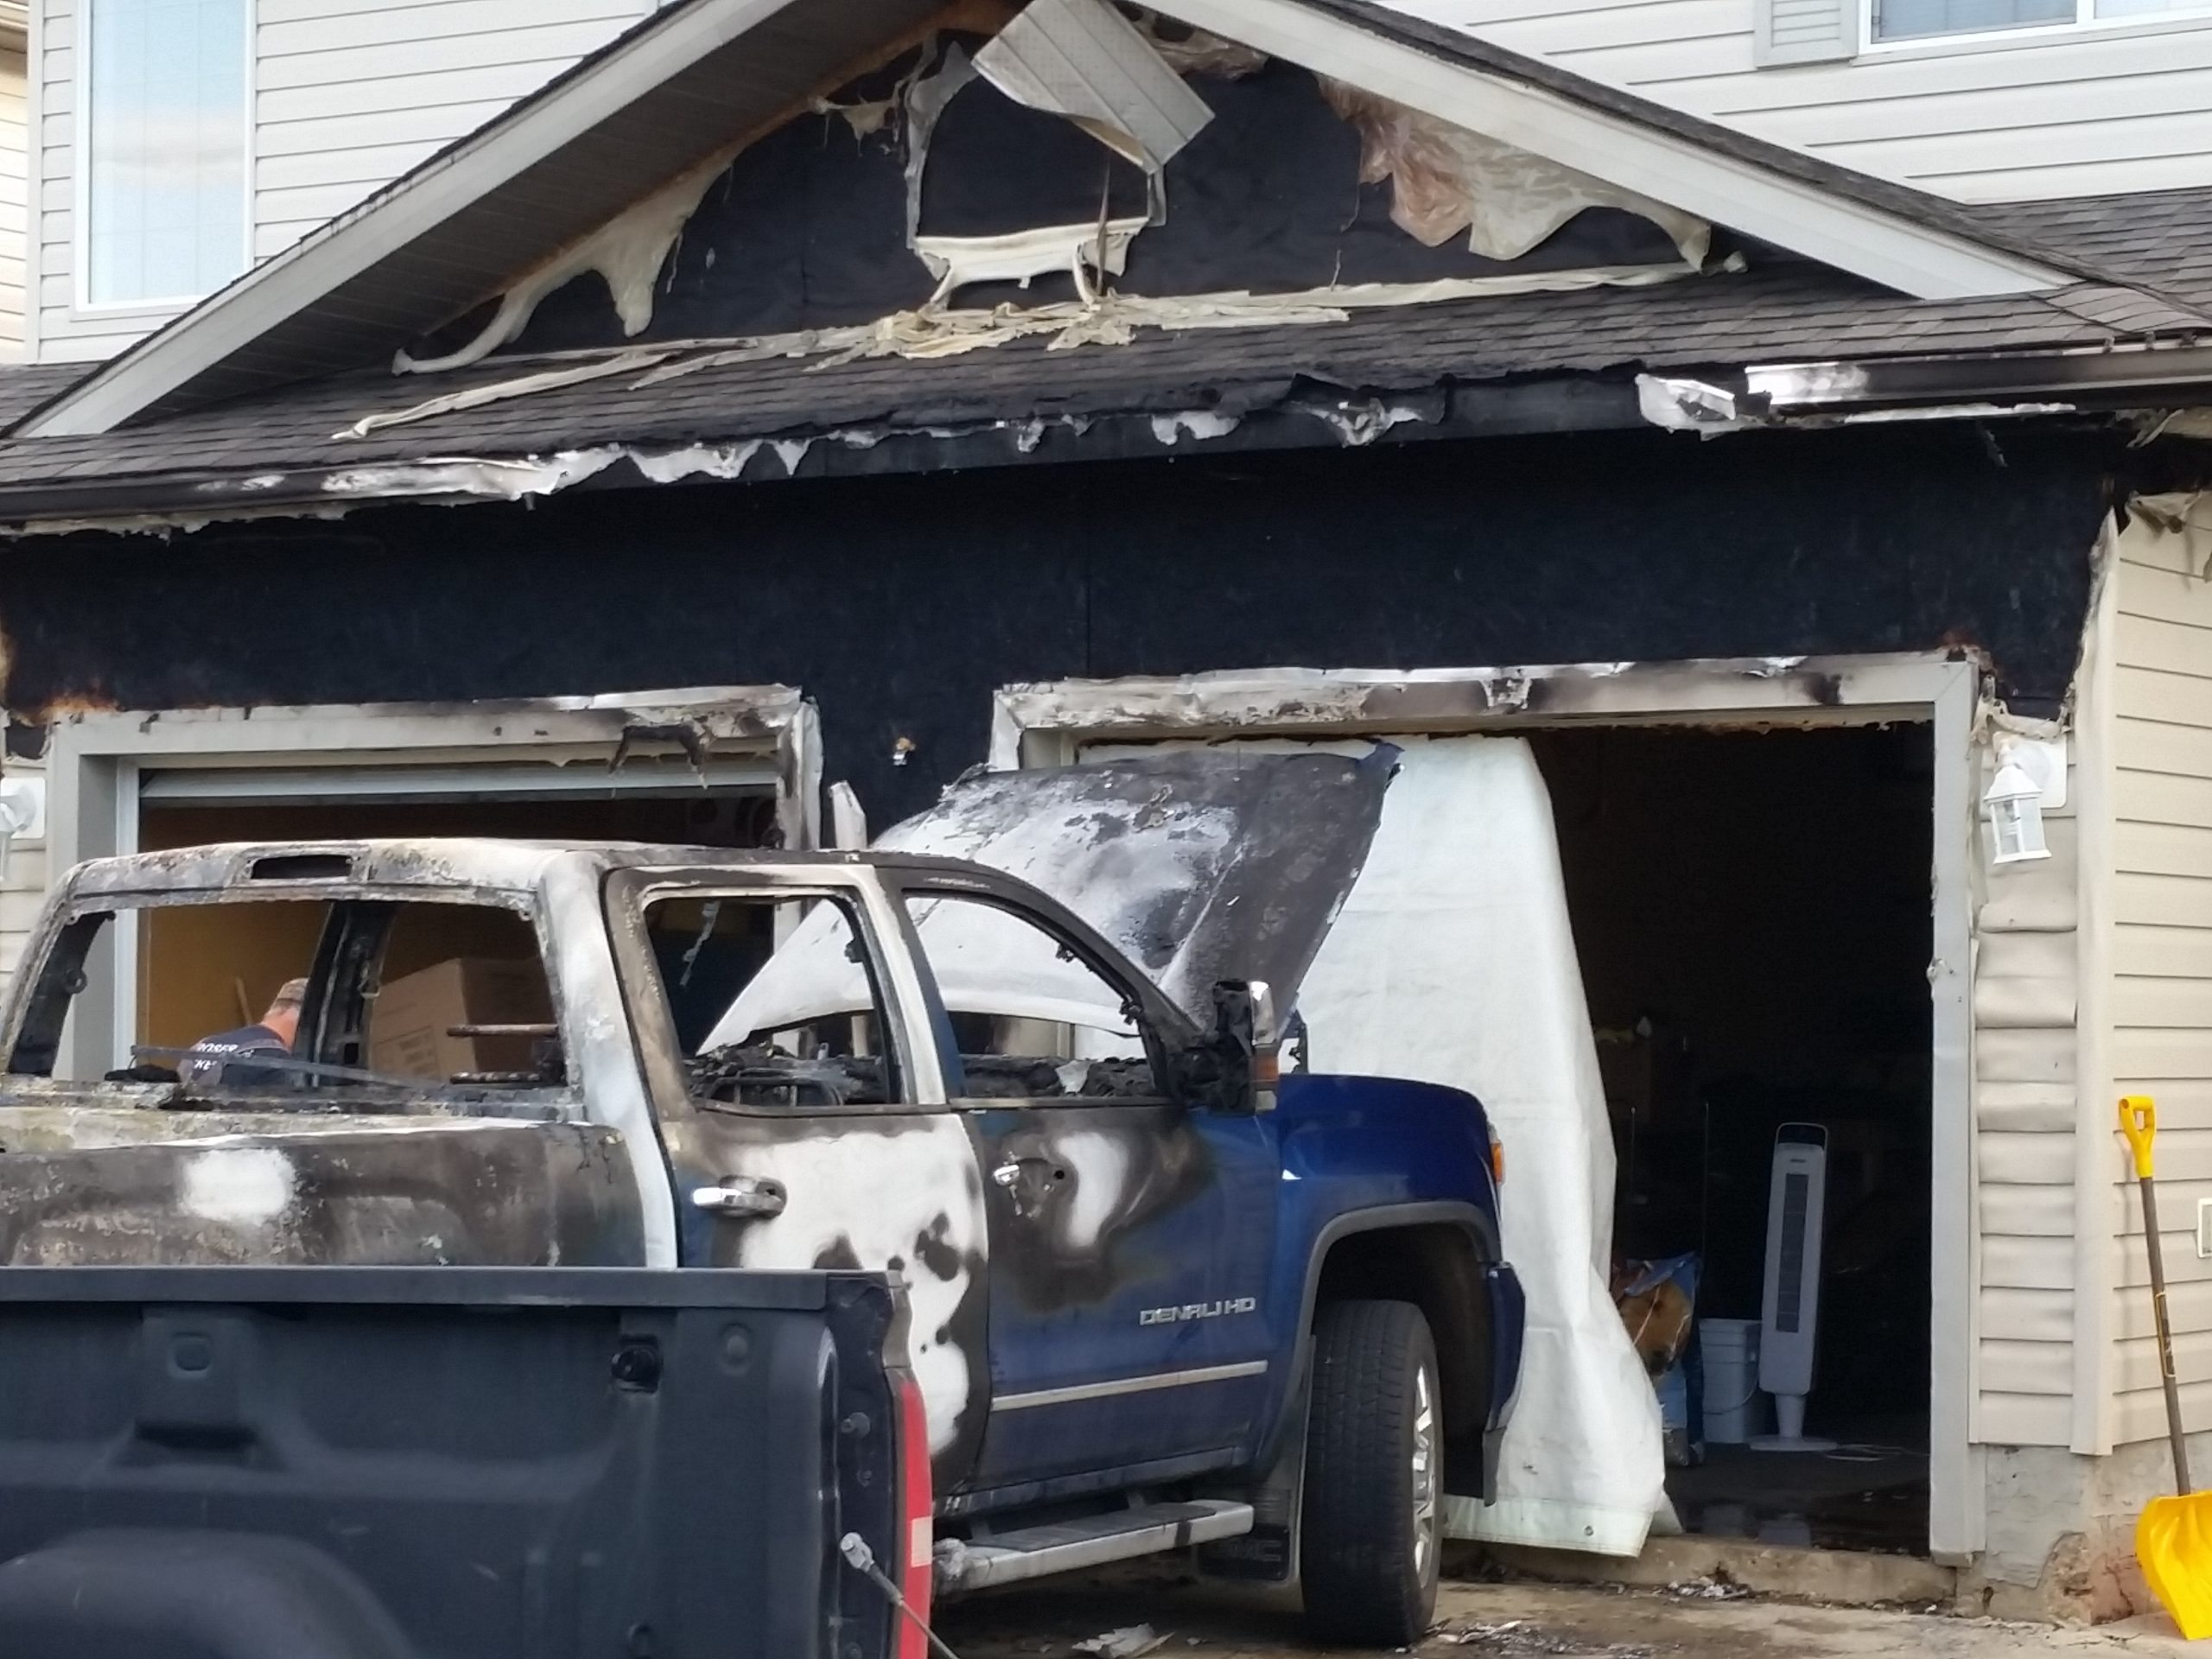 Fire in Timberlea Extinguished, Damage to Vehicles and Home